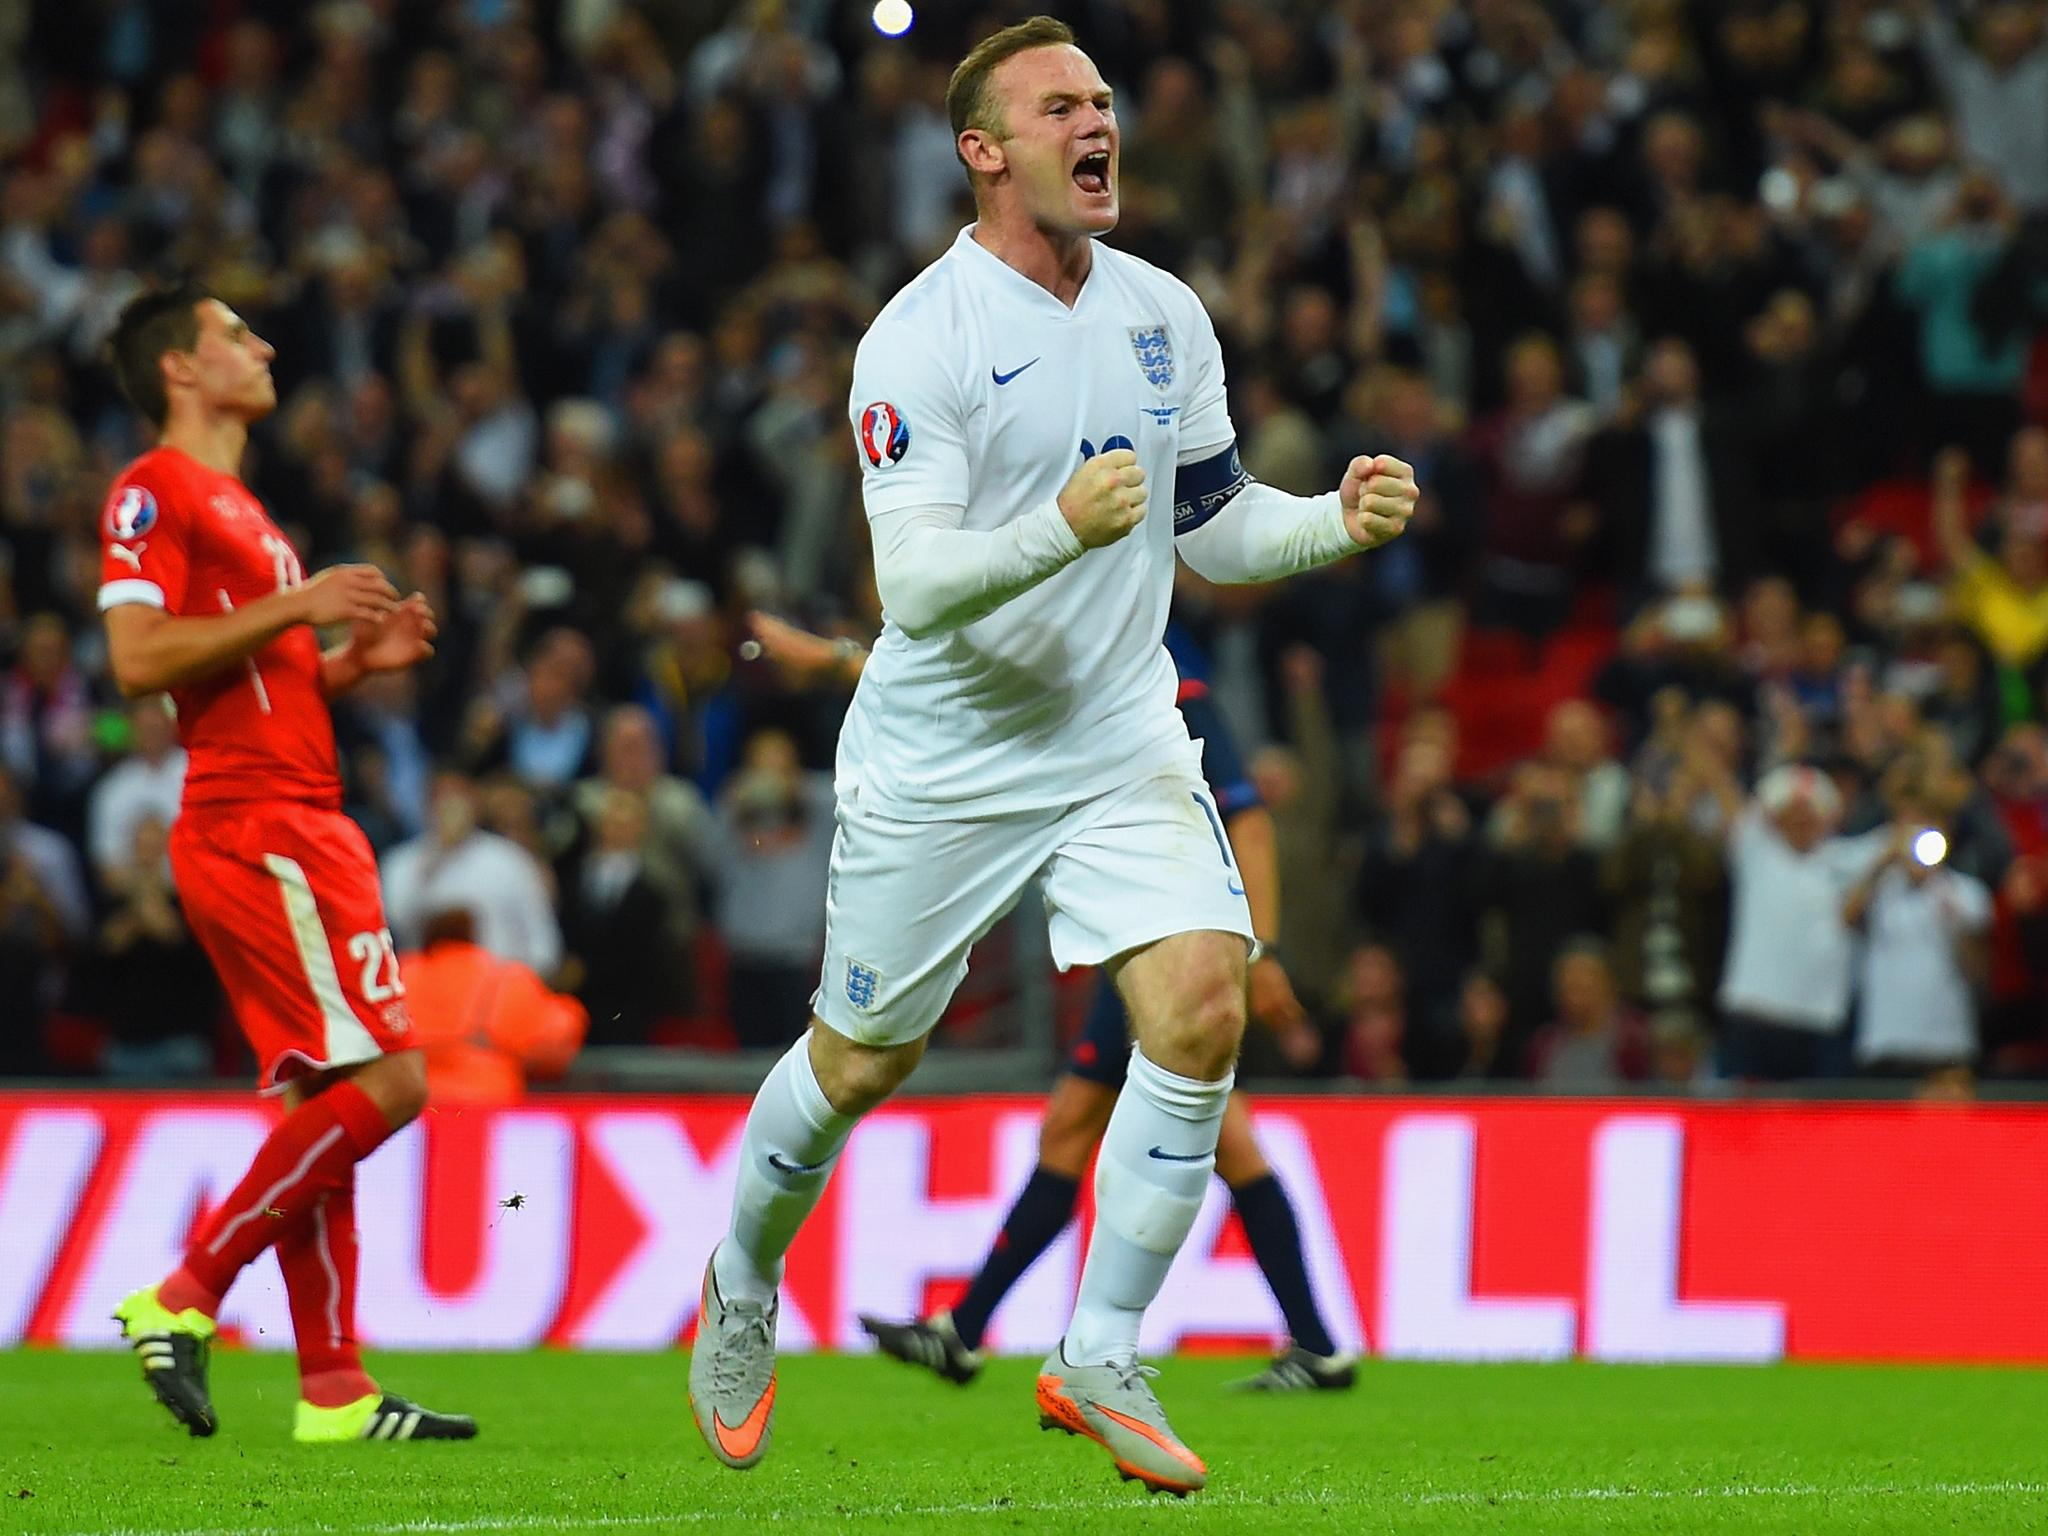 Wayne Rooney retires: England captain announces international retirement with immediate effect